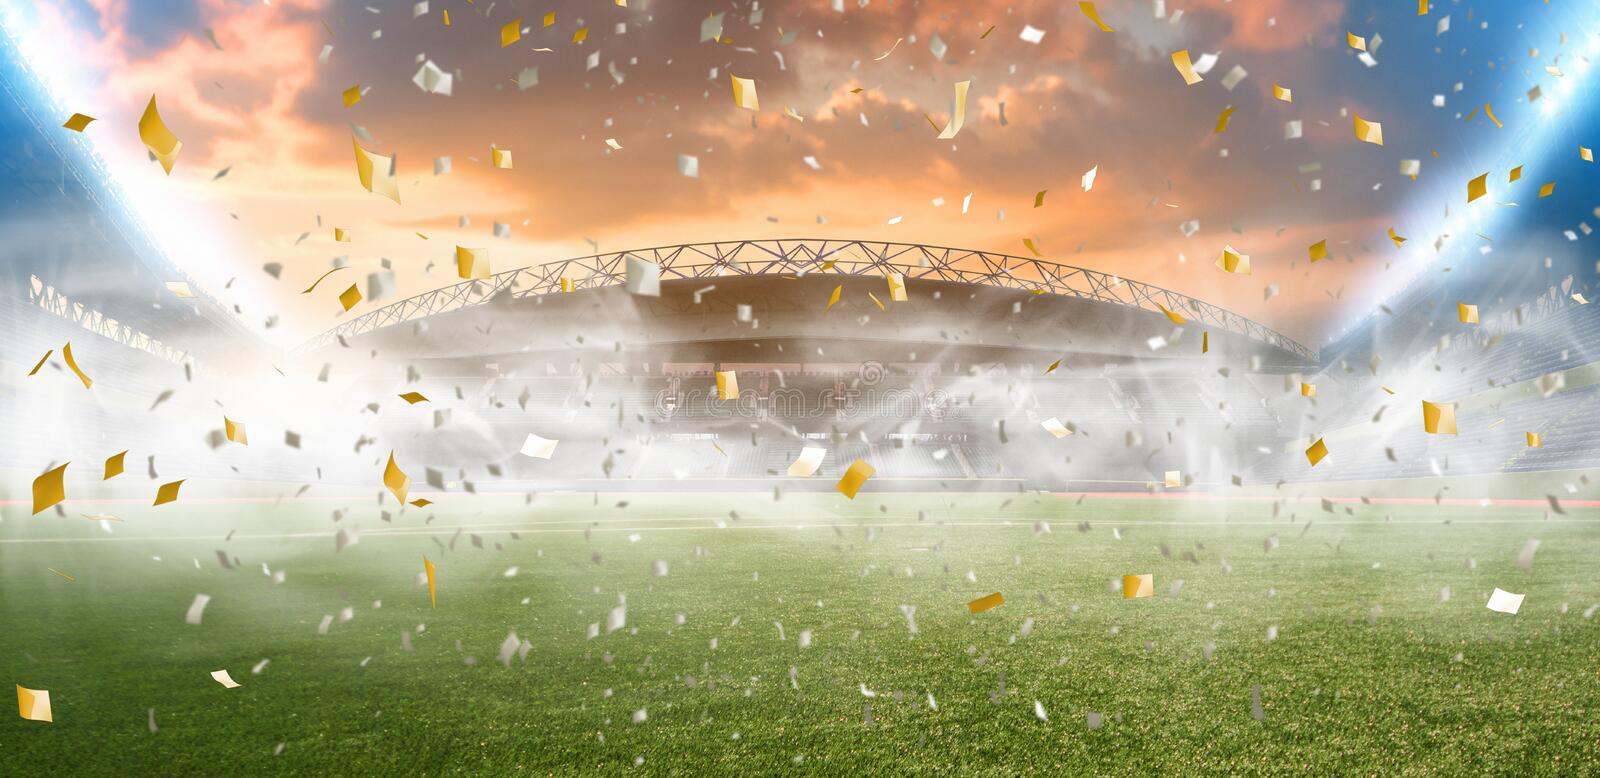 Stadium night before the match. royalty free stock photography